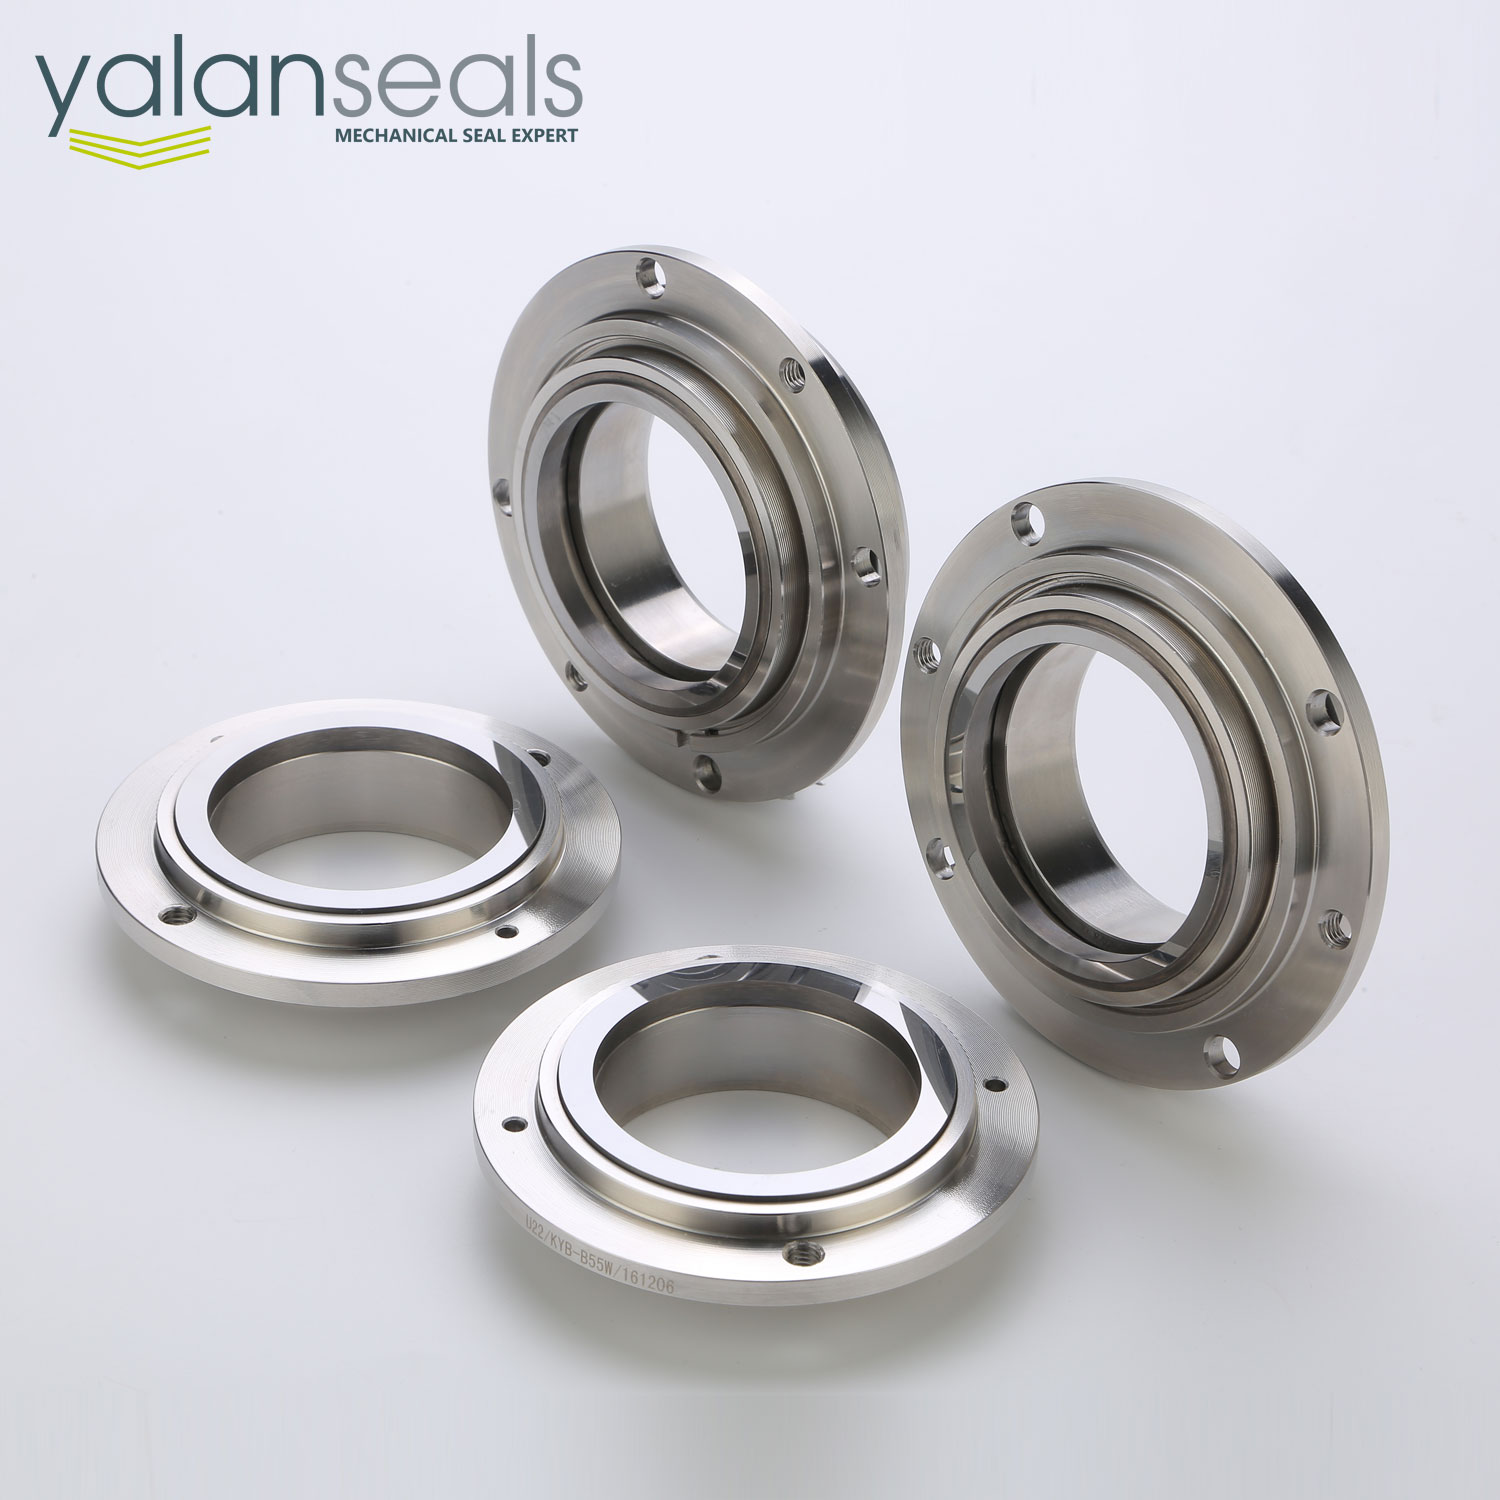 YALAN 10J-10D High Speed Mechanical Seals for Blowers, High Speed Pumps and Compressors